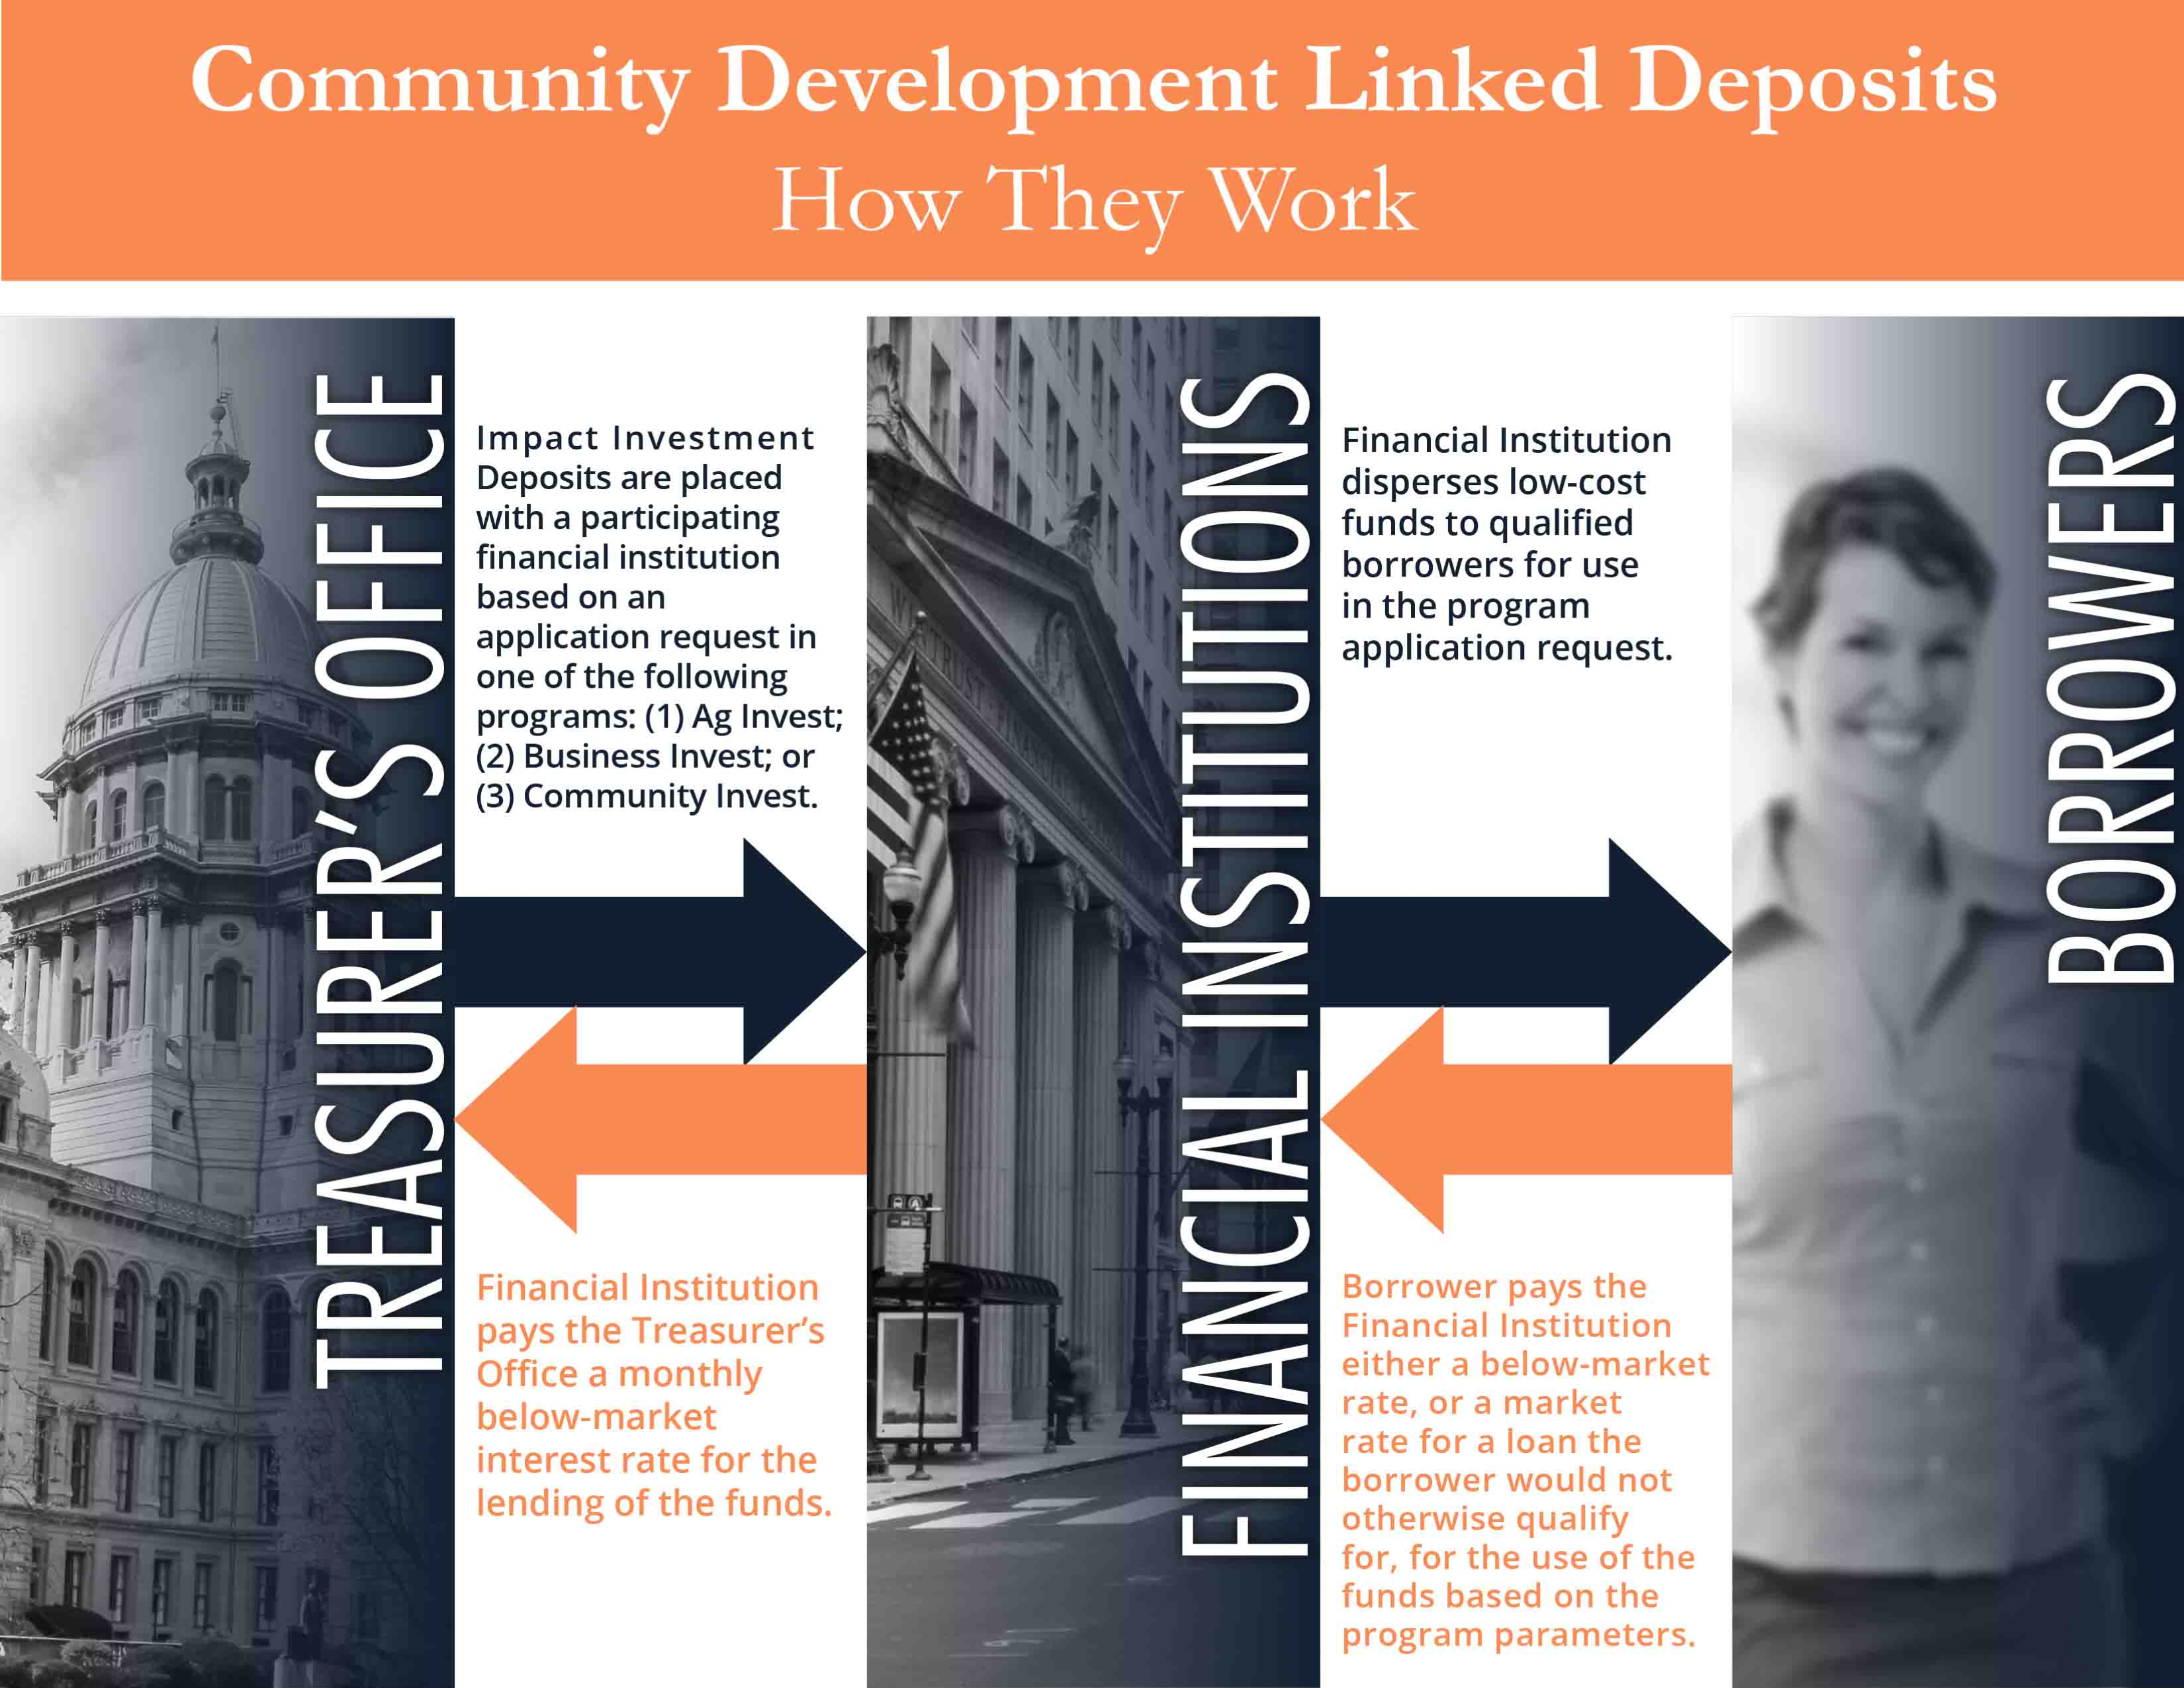 How Community Development Linked Deposits Work